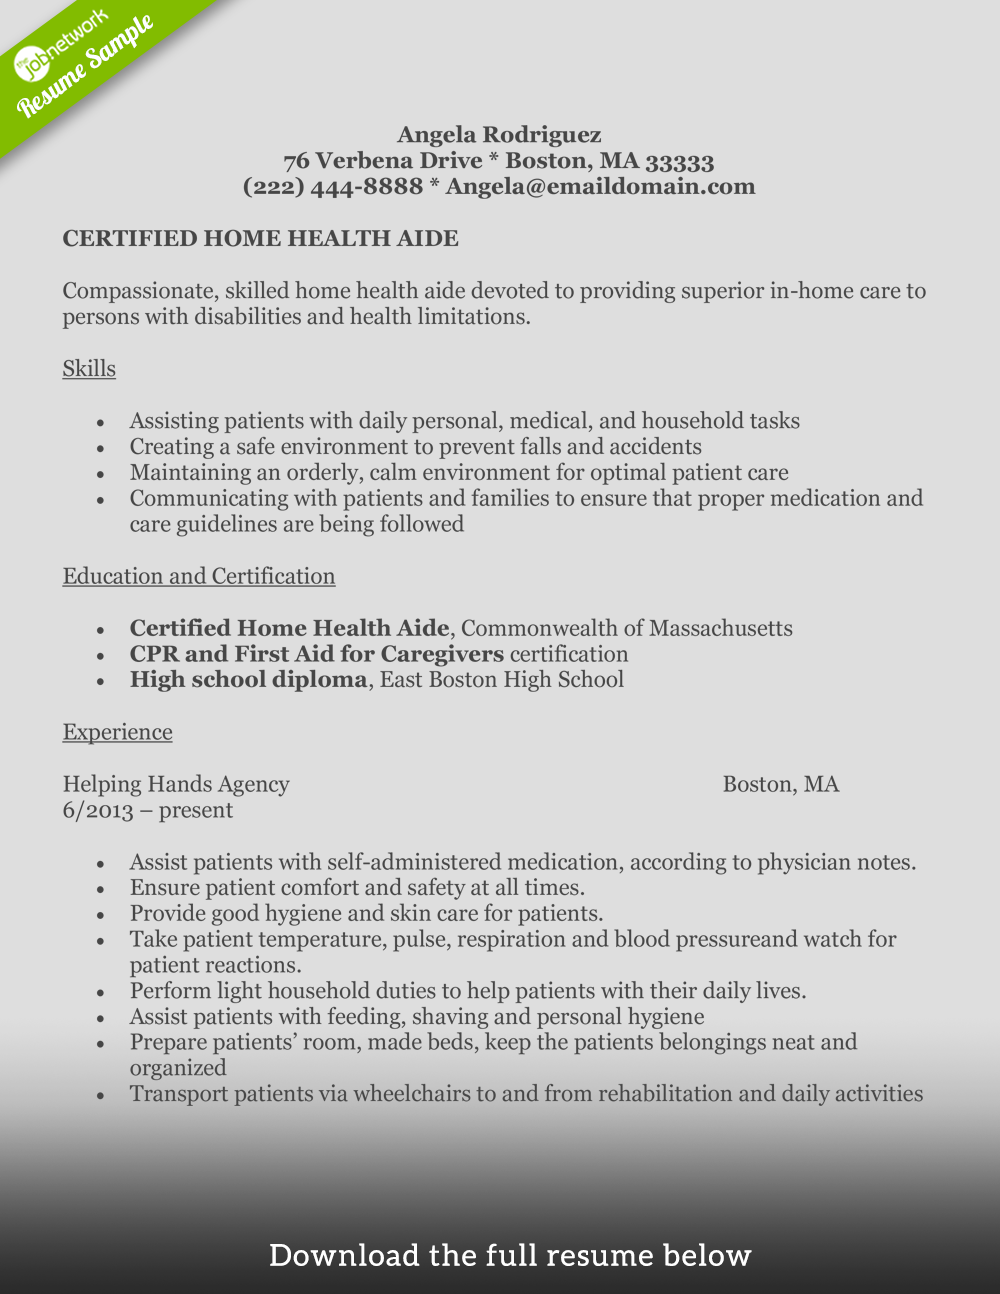 Home Health Aide Resume Certified  Where To Put Certifications On Resume